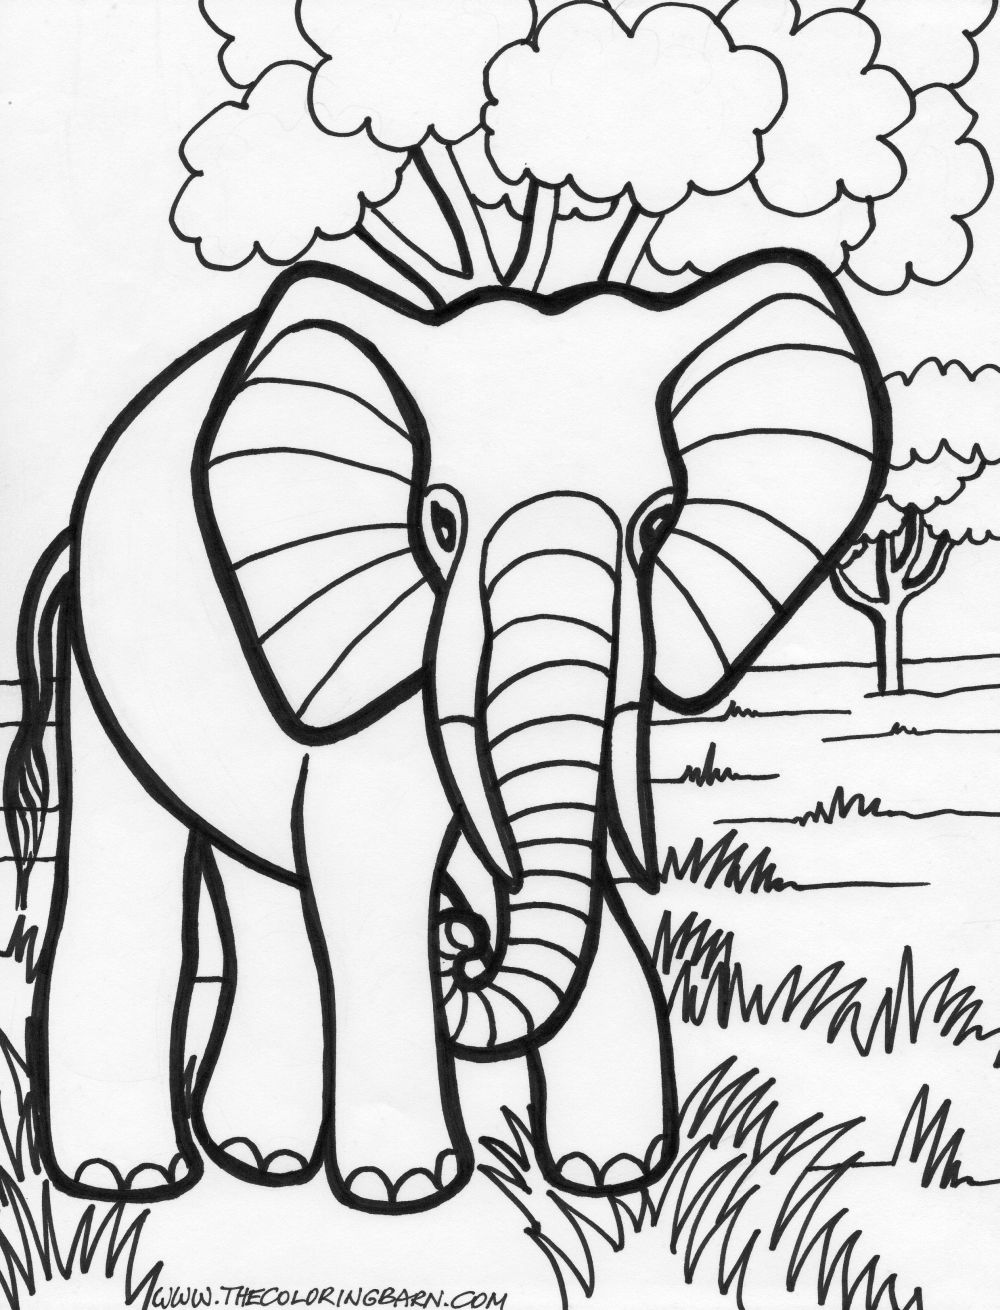 transmissionpress: 14 Elephant Coloring Pages for Kids